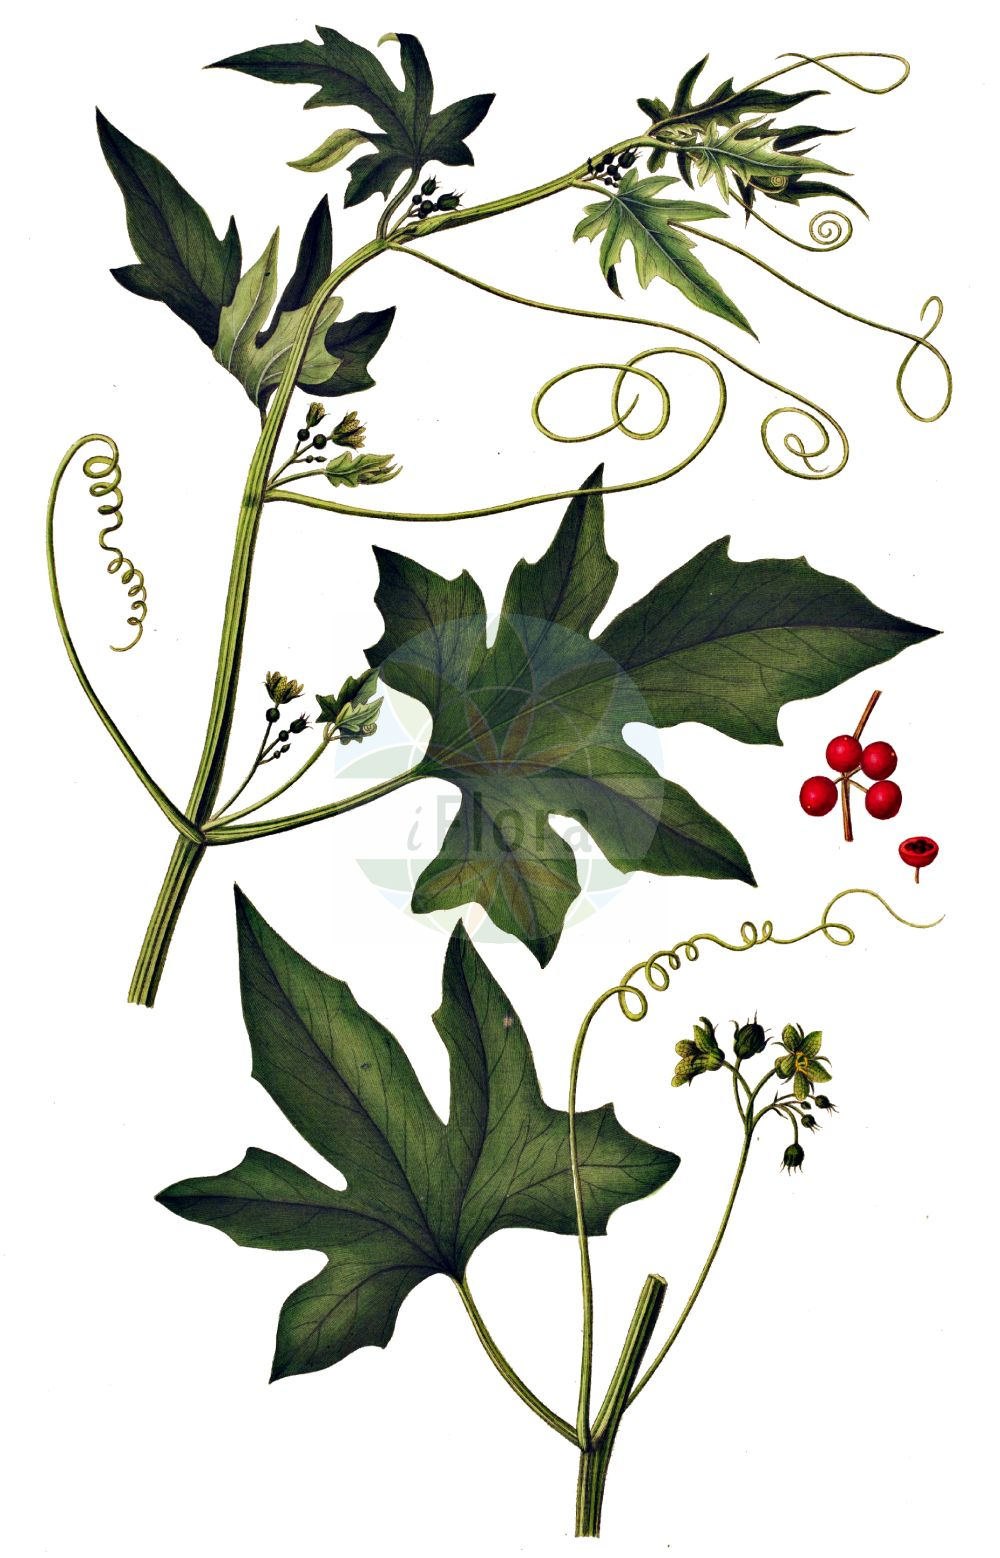 Historische Abbildung von Bryonia dioica (Rotfruechtige Zaunruebe - White Bryony). Das Bild zeigt Blatt, Bluete, Frucht und Same. ---- Historical Drawing of Bryonia dioica (Rotfruechtige Zaunruebe - White Bryony).The image is showing leaf, flower, fruit and seed.(Bryonia dioica,Rotfruechtige Zaunruebe,White Bryony,Bryonia digyna,Bryonia dioica,Bryonia sicula,Rotfruechtige Zaunruebe,Rotbeerige Zaunruebe,Rote Zaunruebe,White Bryony,Common Bryony,Cretan Bryony,Red-berried Bryony,Red-berry Bryony,Red Bryony,Bryonia,Zaunruebe,Bryony,Cucurbitaceae,Kuerbisgewaechse,Cucurbit family,Blatt,Bluete,Frucht,Same,leaf,flower,fruit,seed,Oeder (1761-1883))